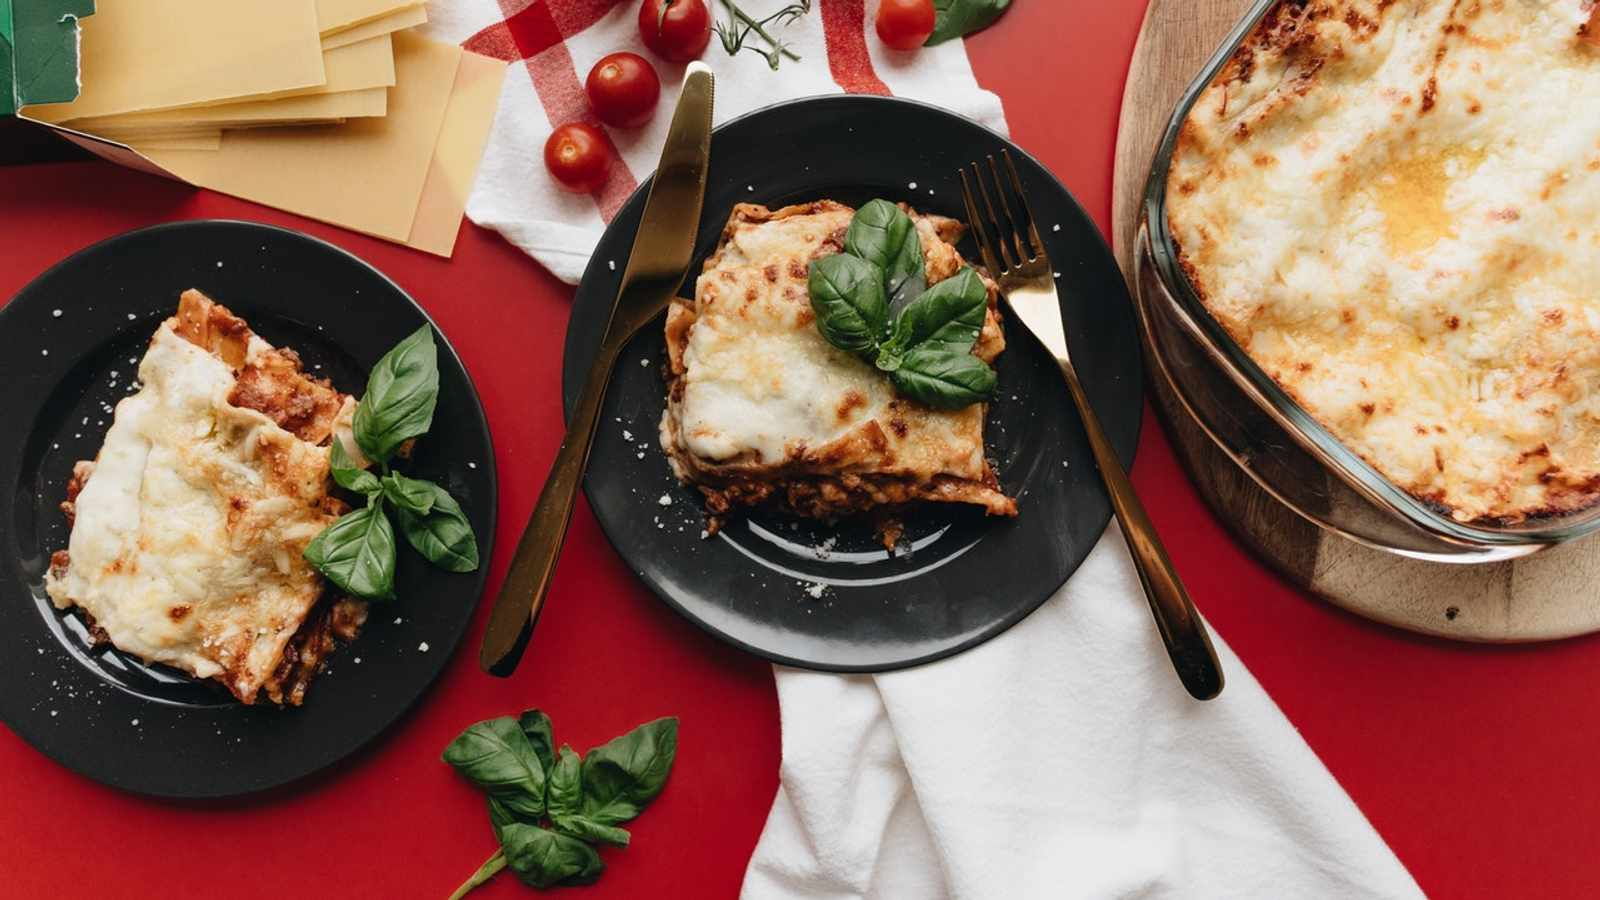 A sophisticated lasagne recipe